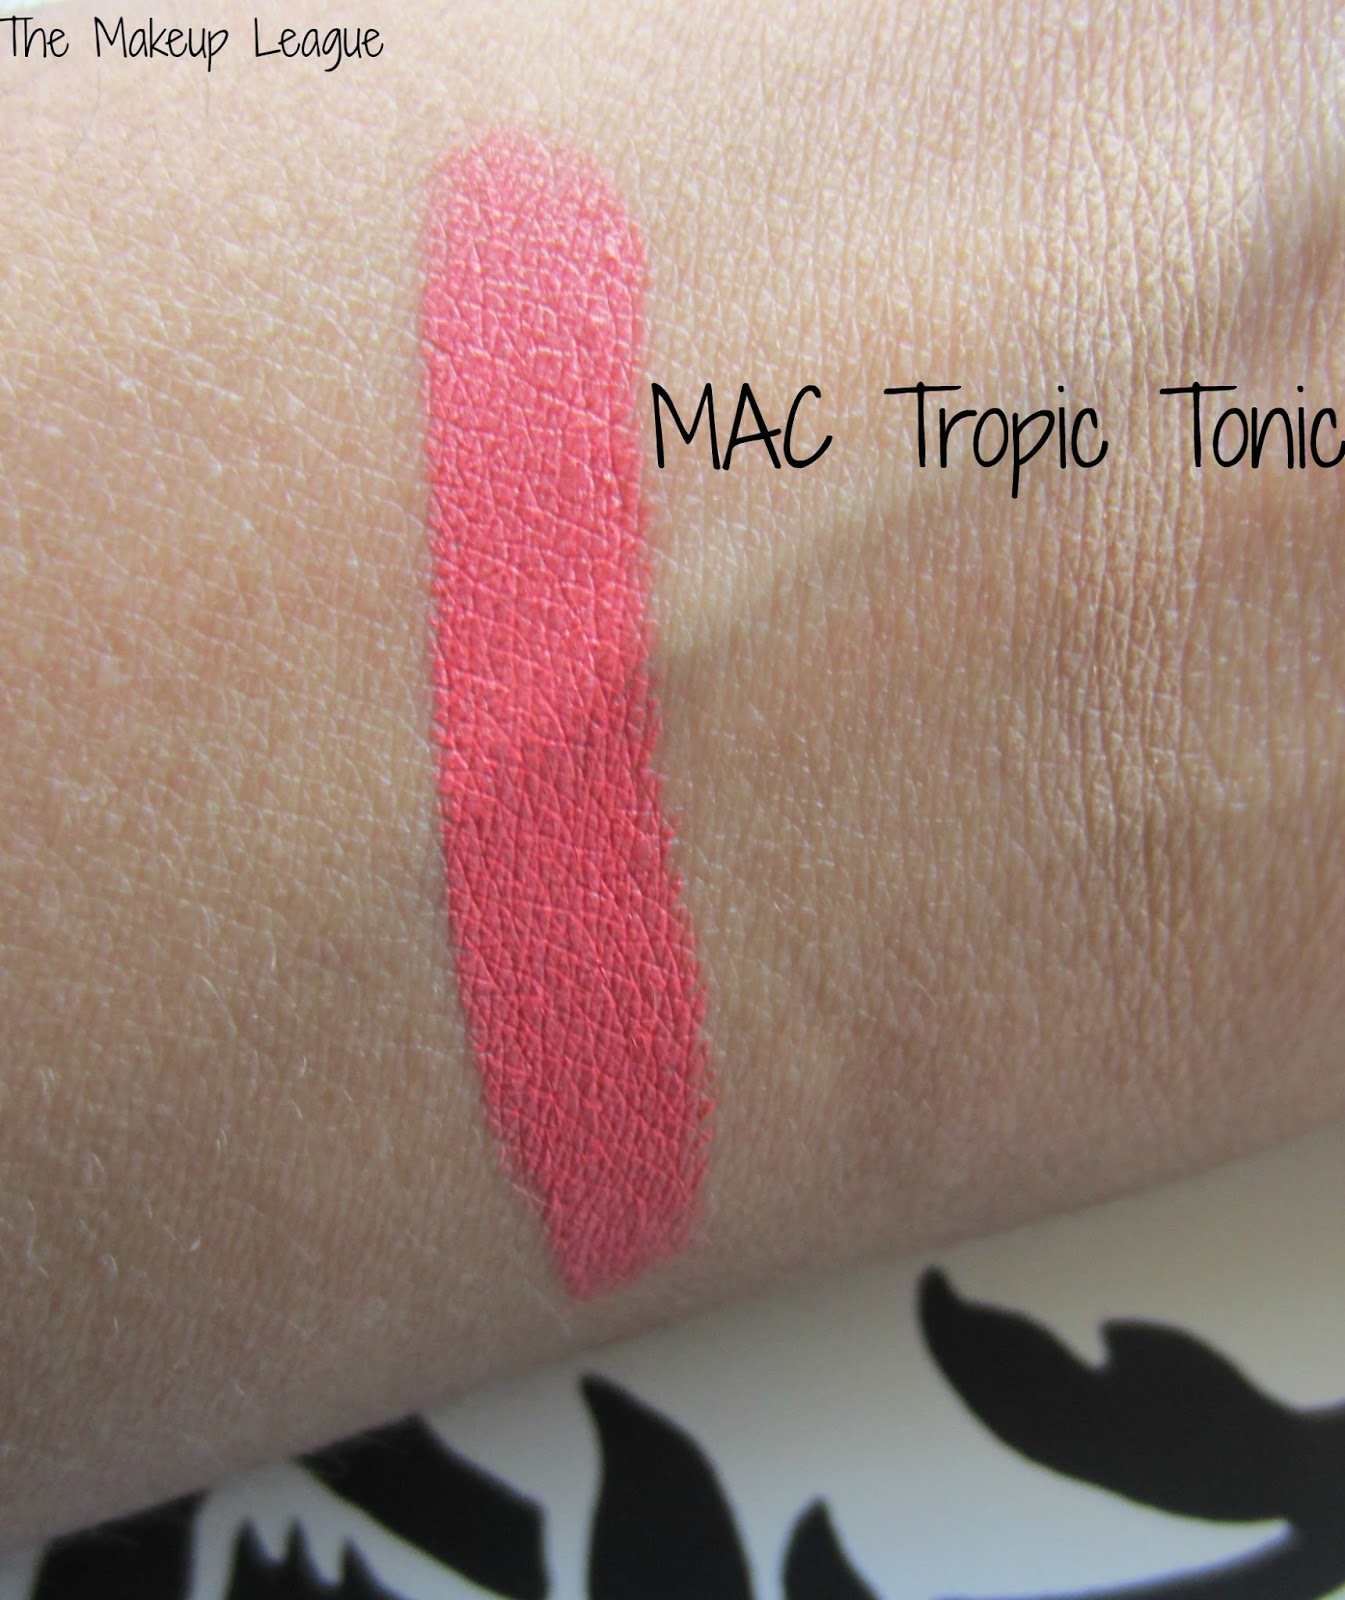 Top MAC & Sephora Haul! - The Makeup League TM33